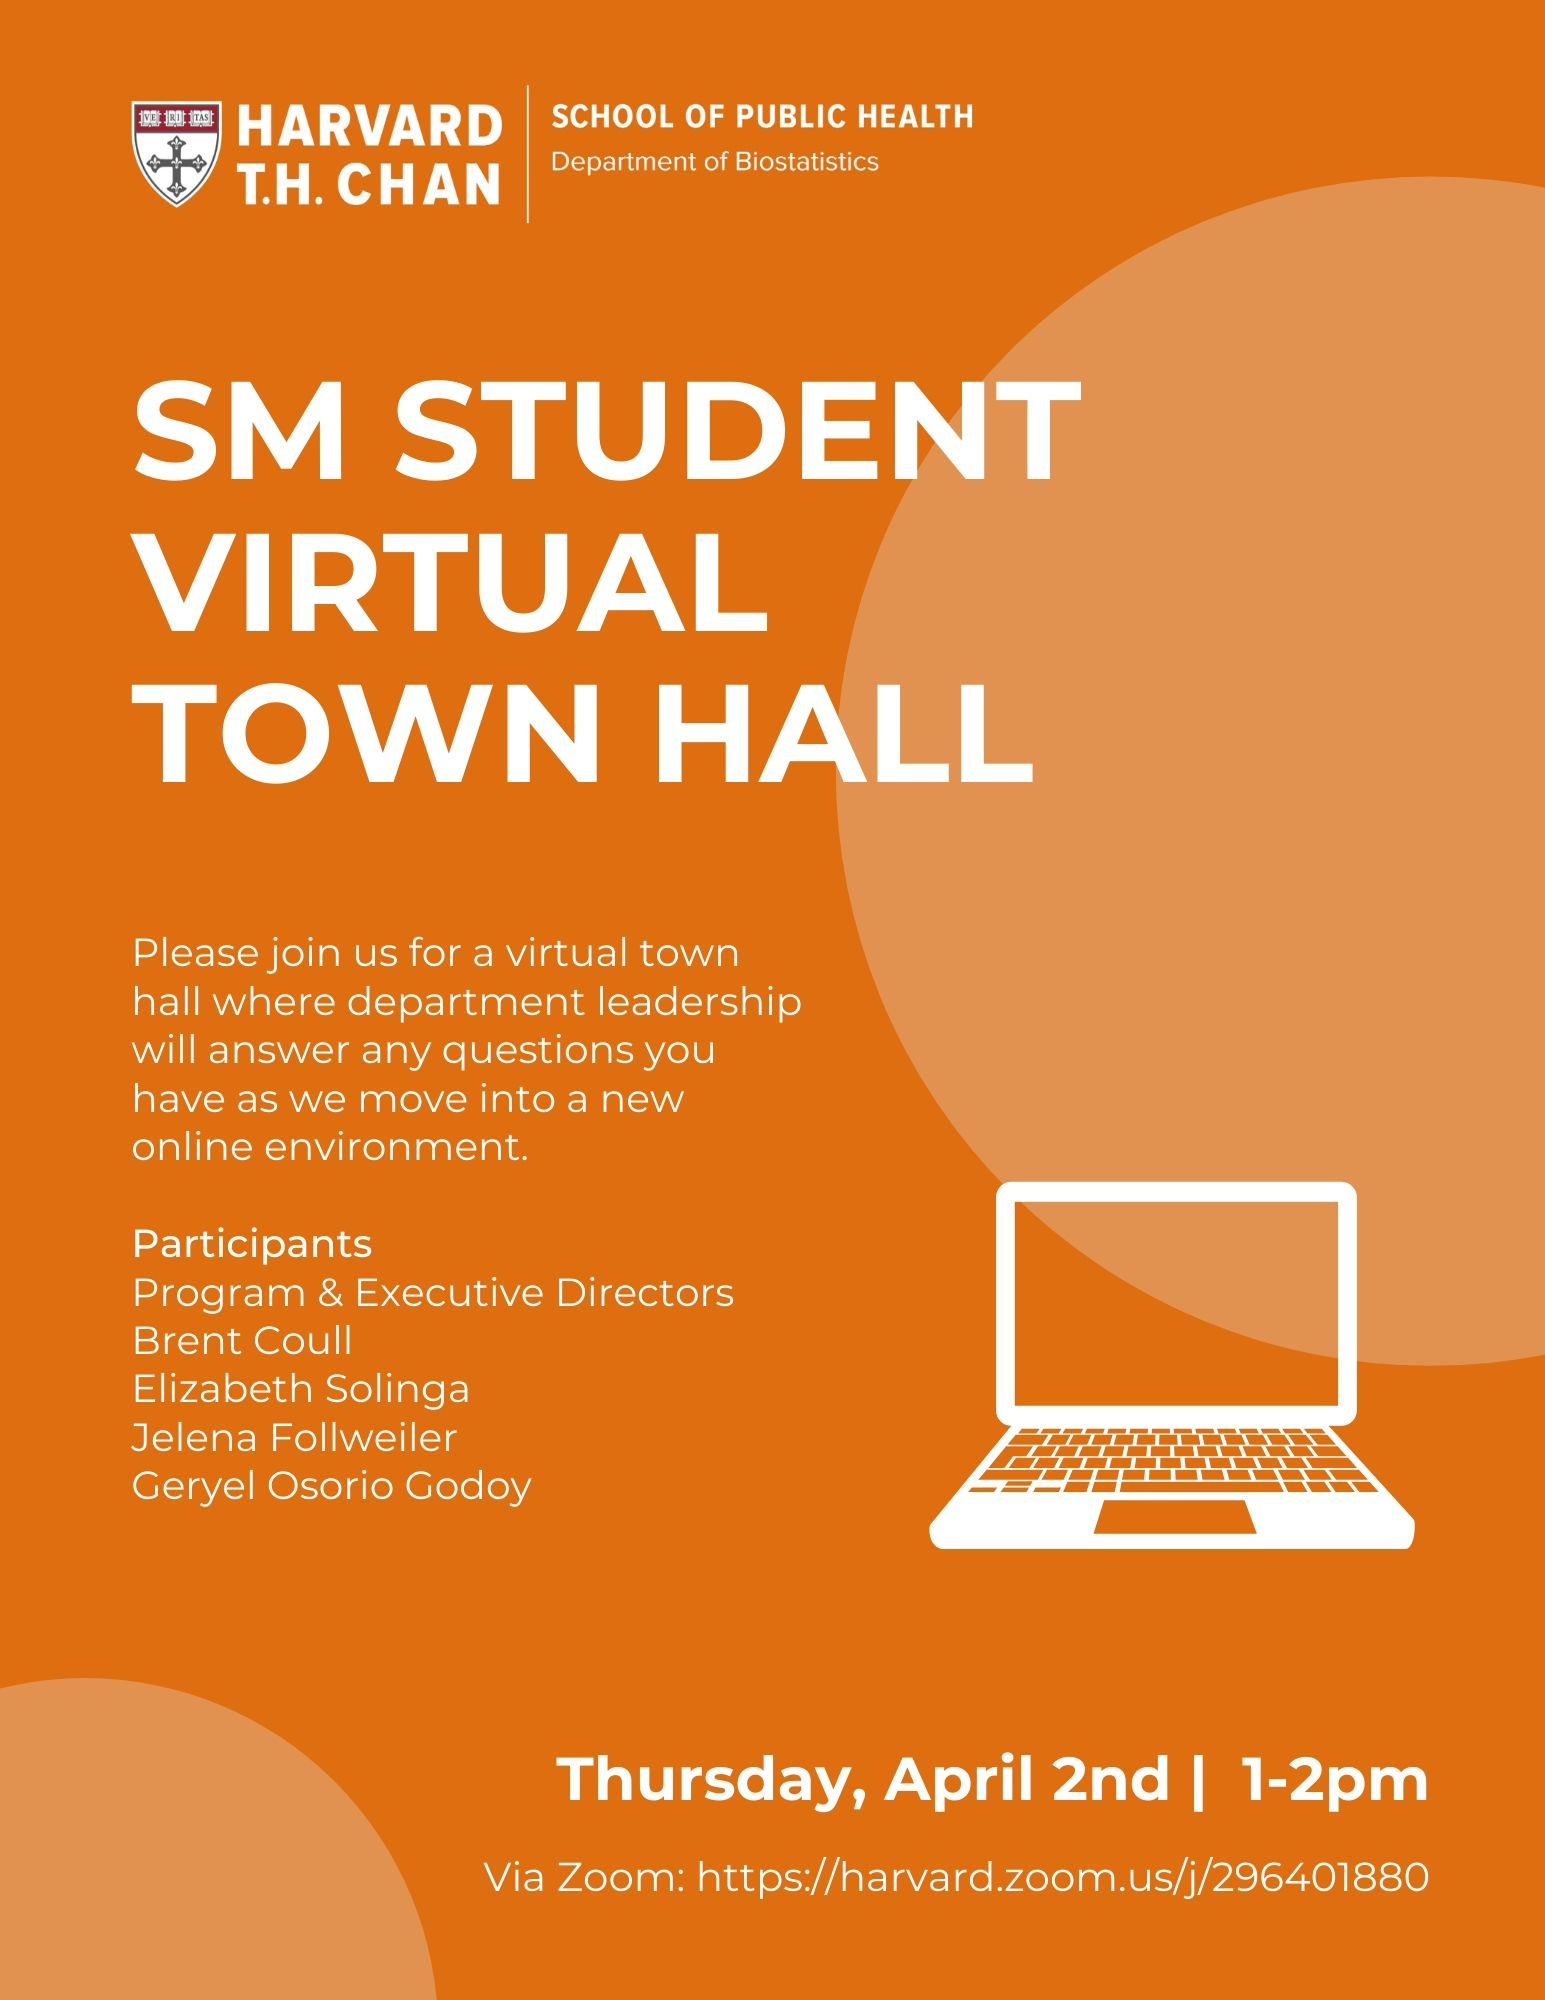 SM Student Town Hall